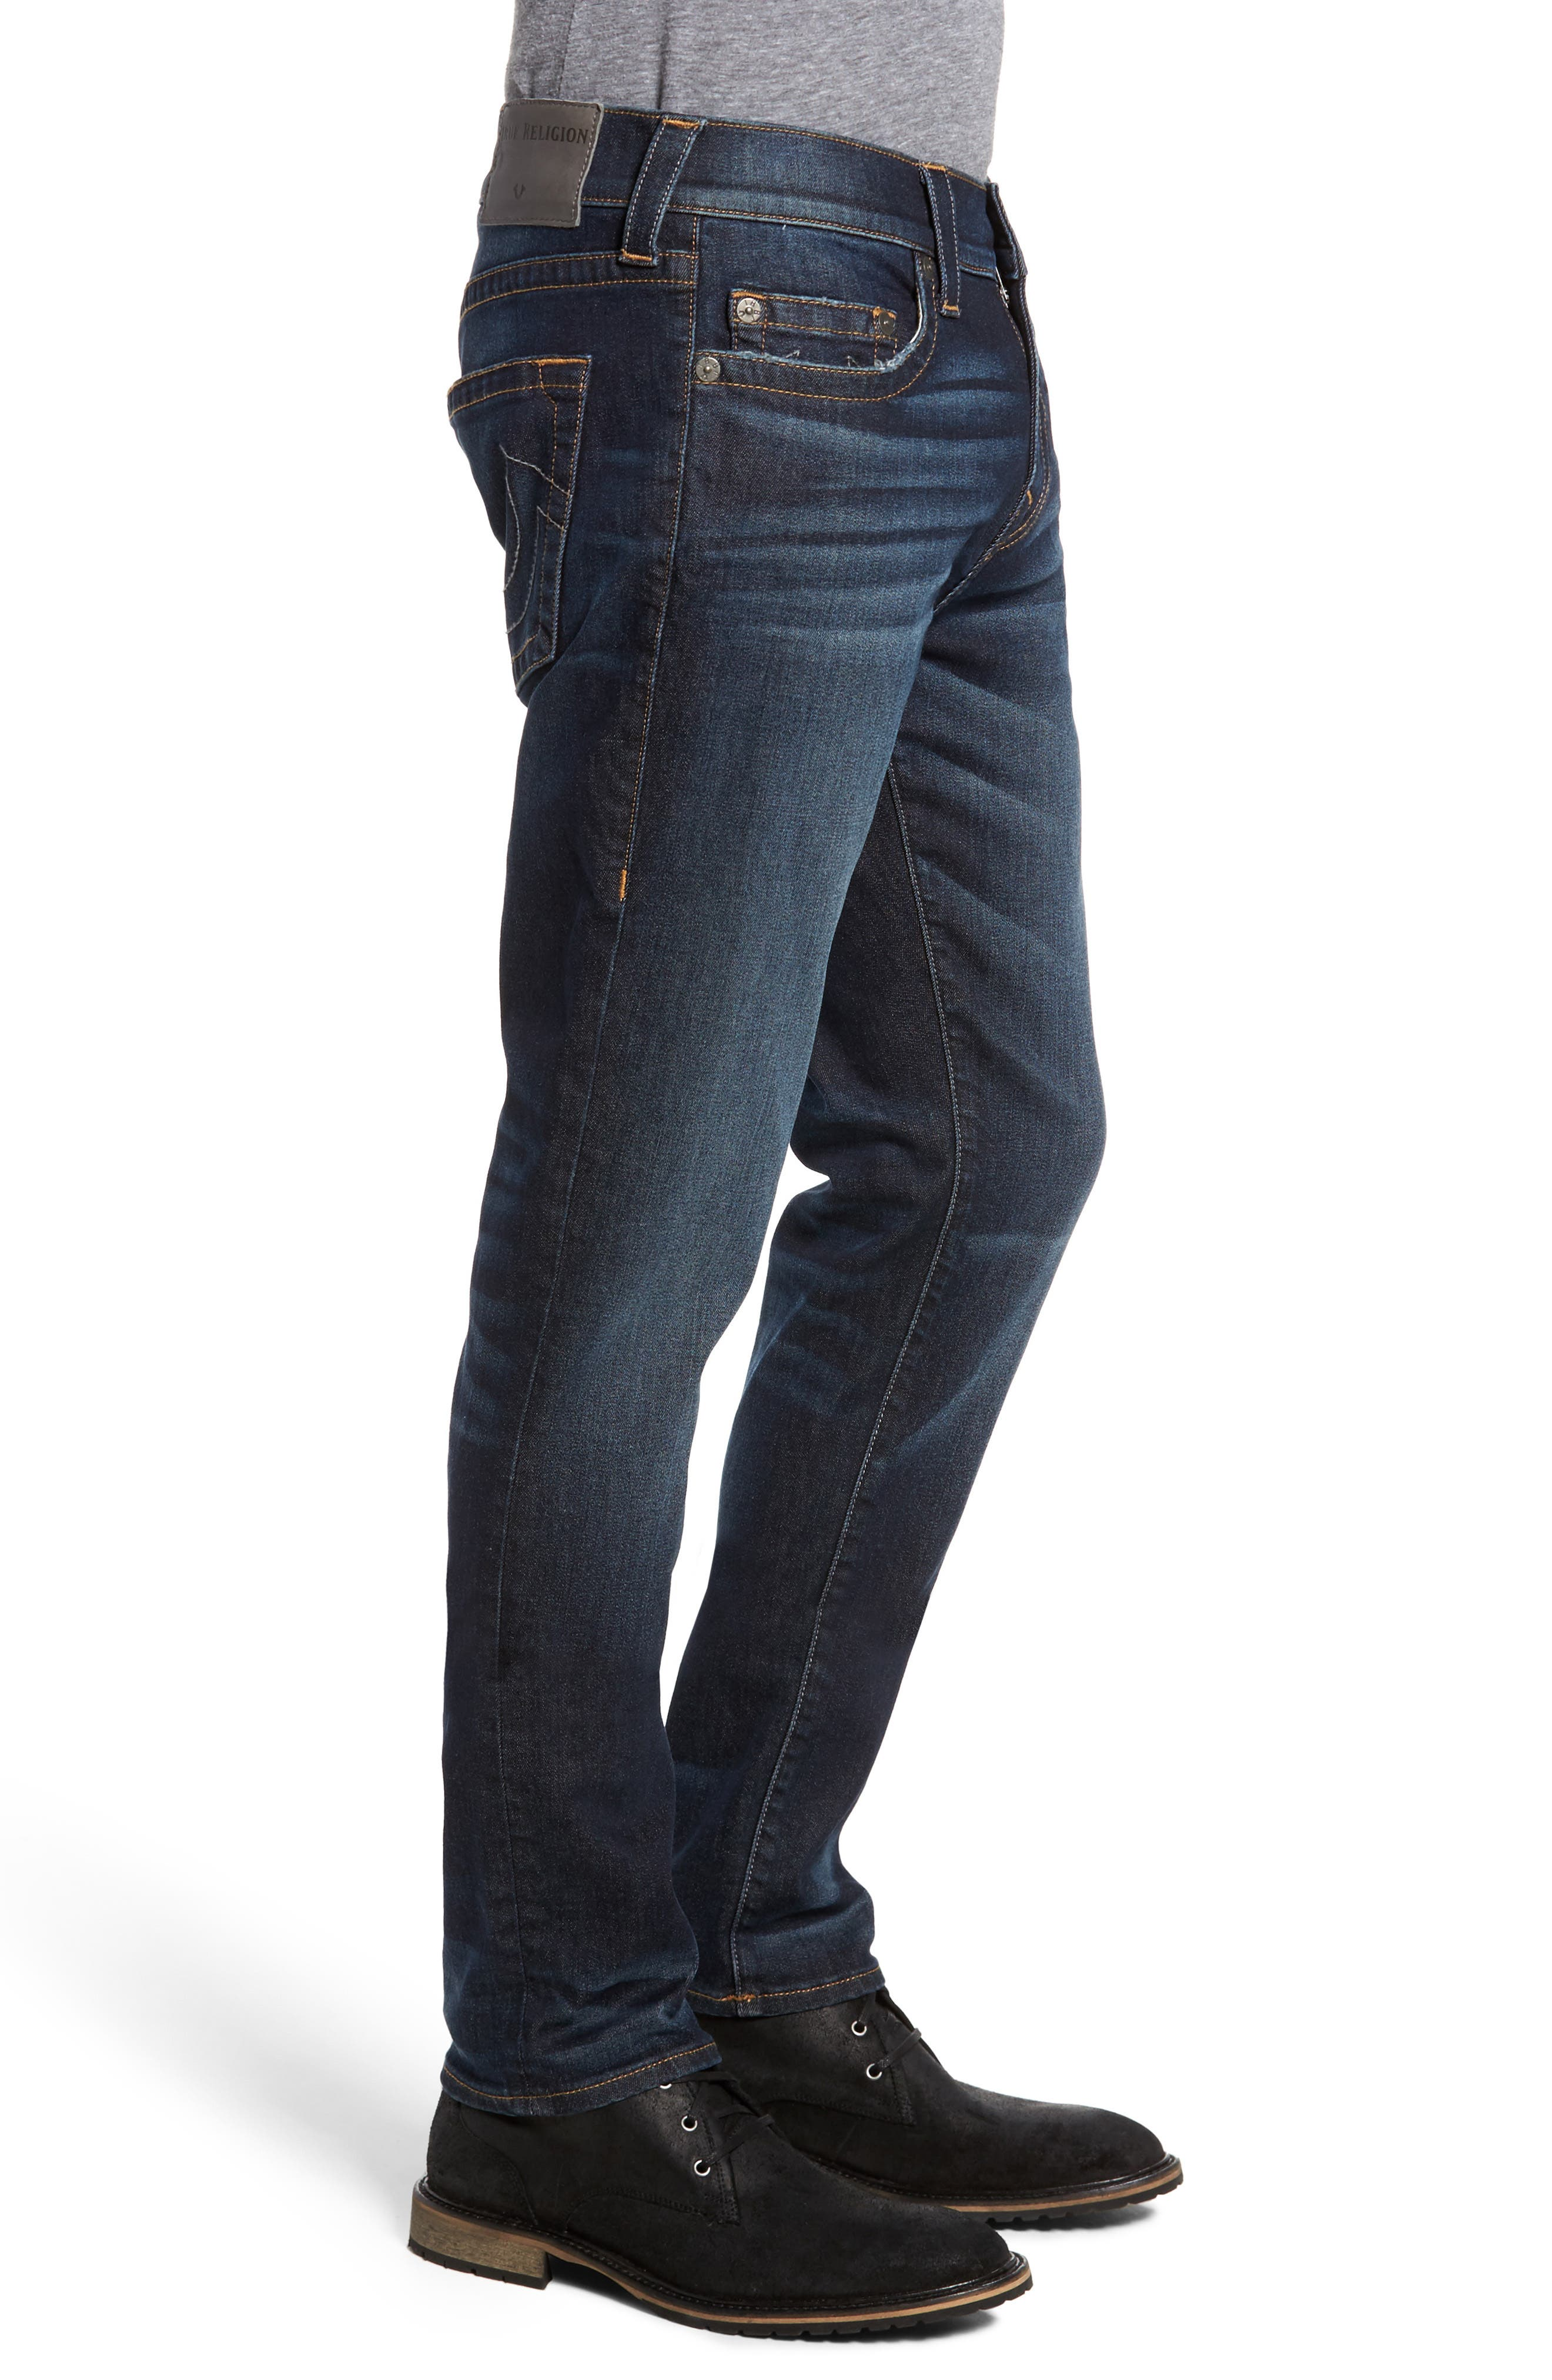 Rocco Skinny Fit Jeans,                             Alternate thumbnail 3, color,                             Dark Indigo Luxe